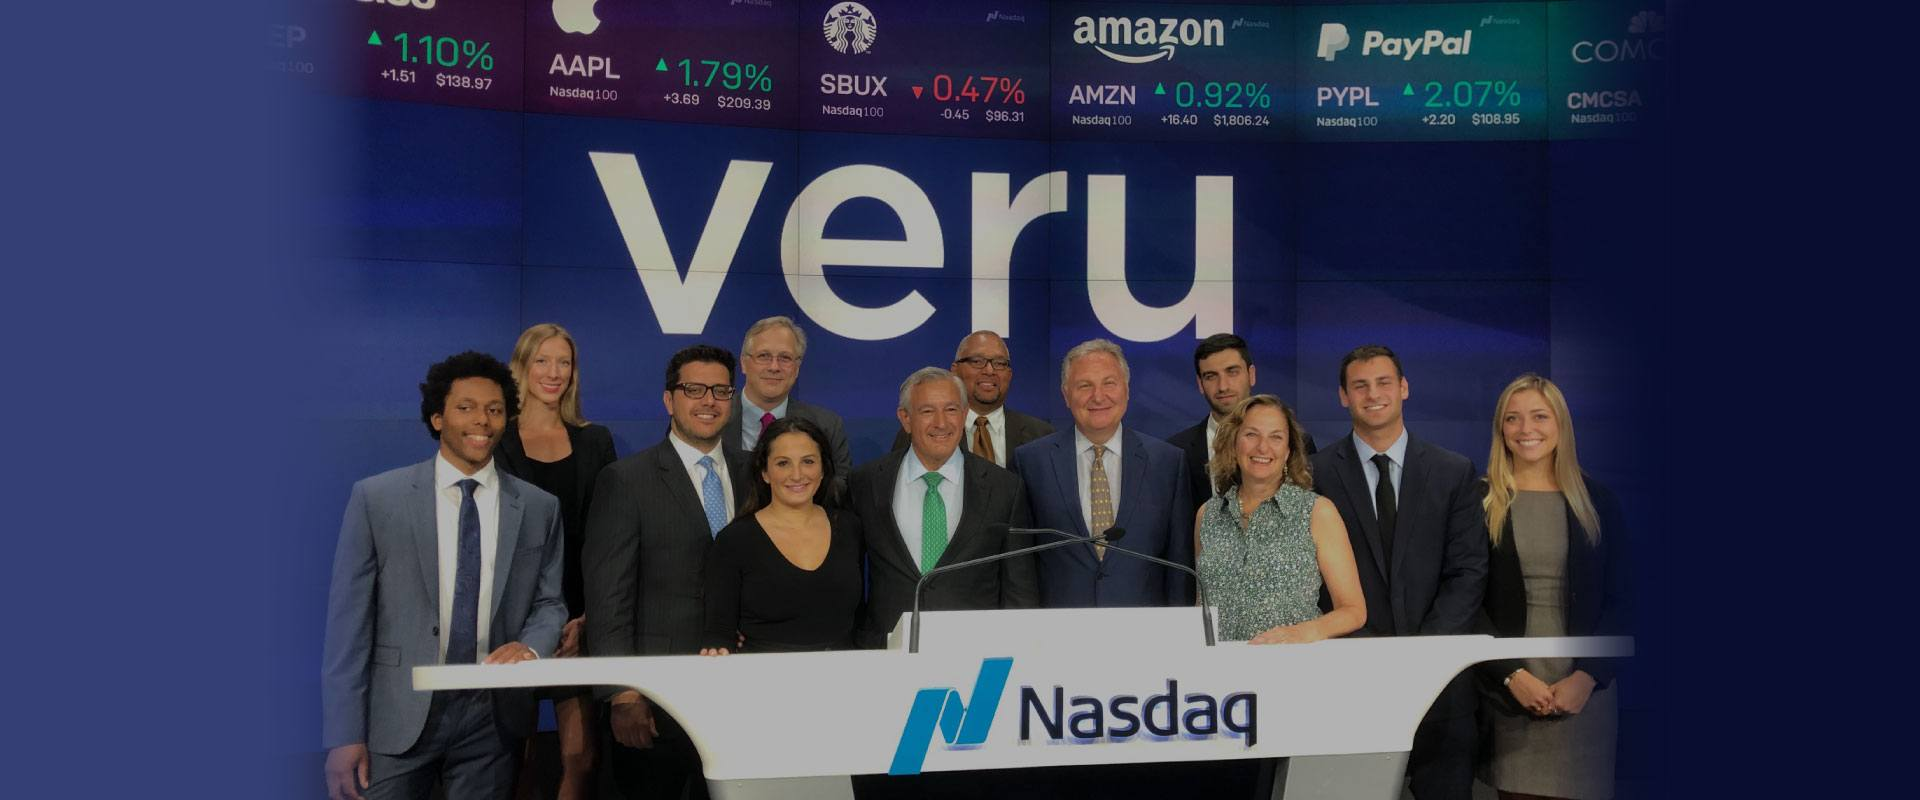 Veru Team at NASDAQ